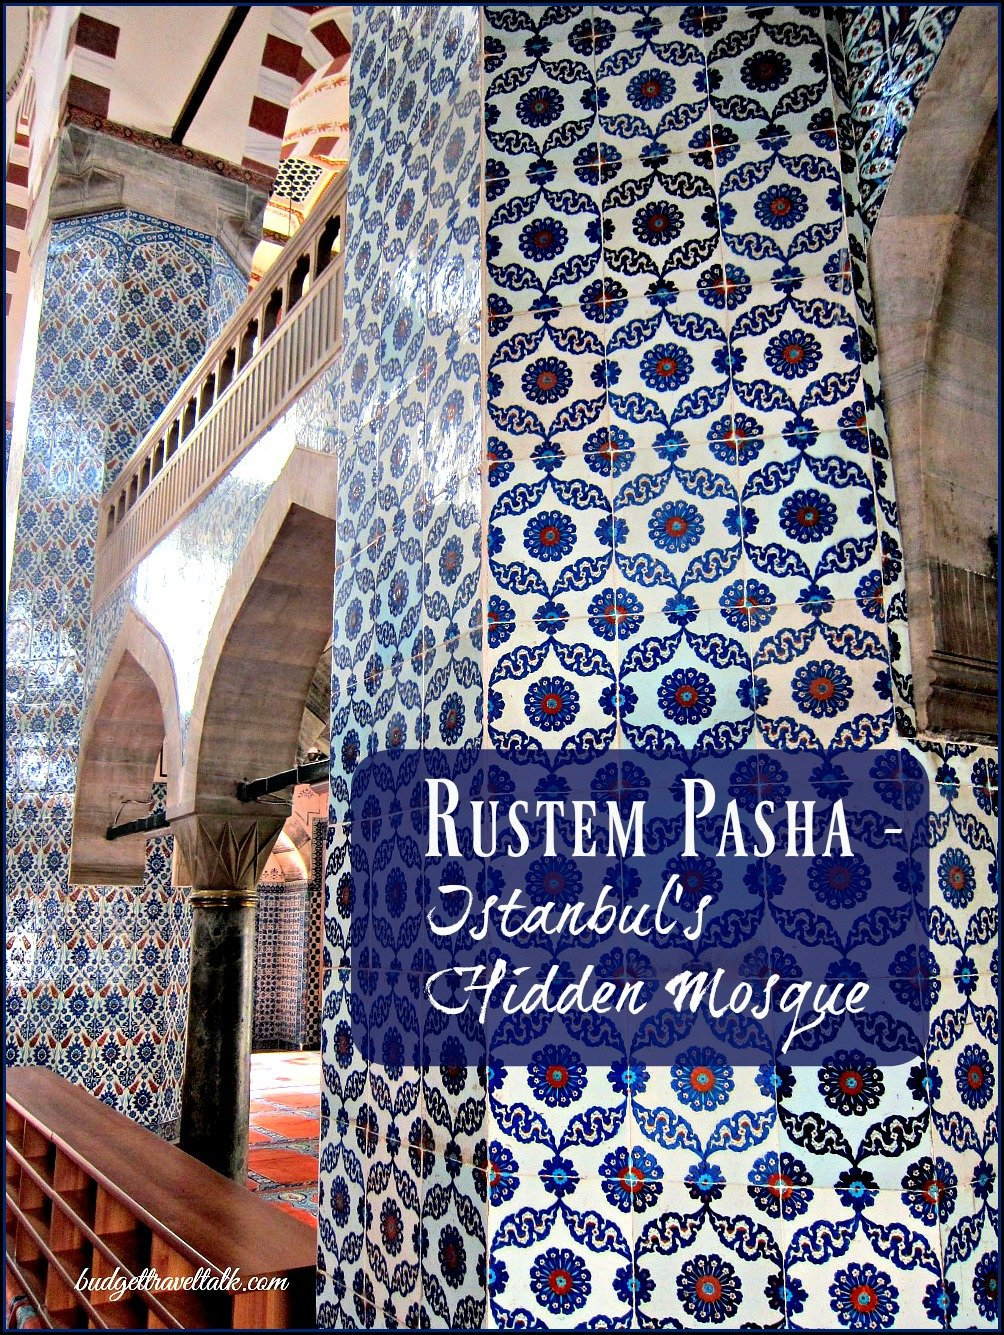 Rustem Pasha a Mosque Hidden in a Market Place